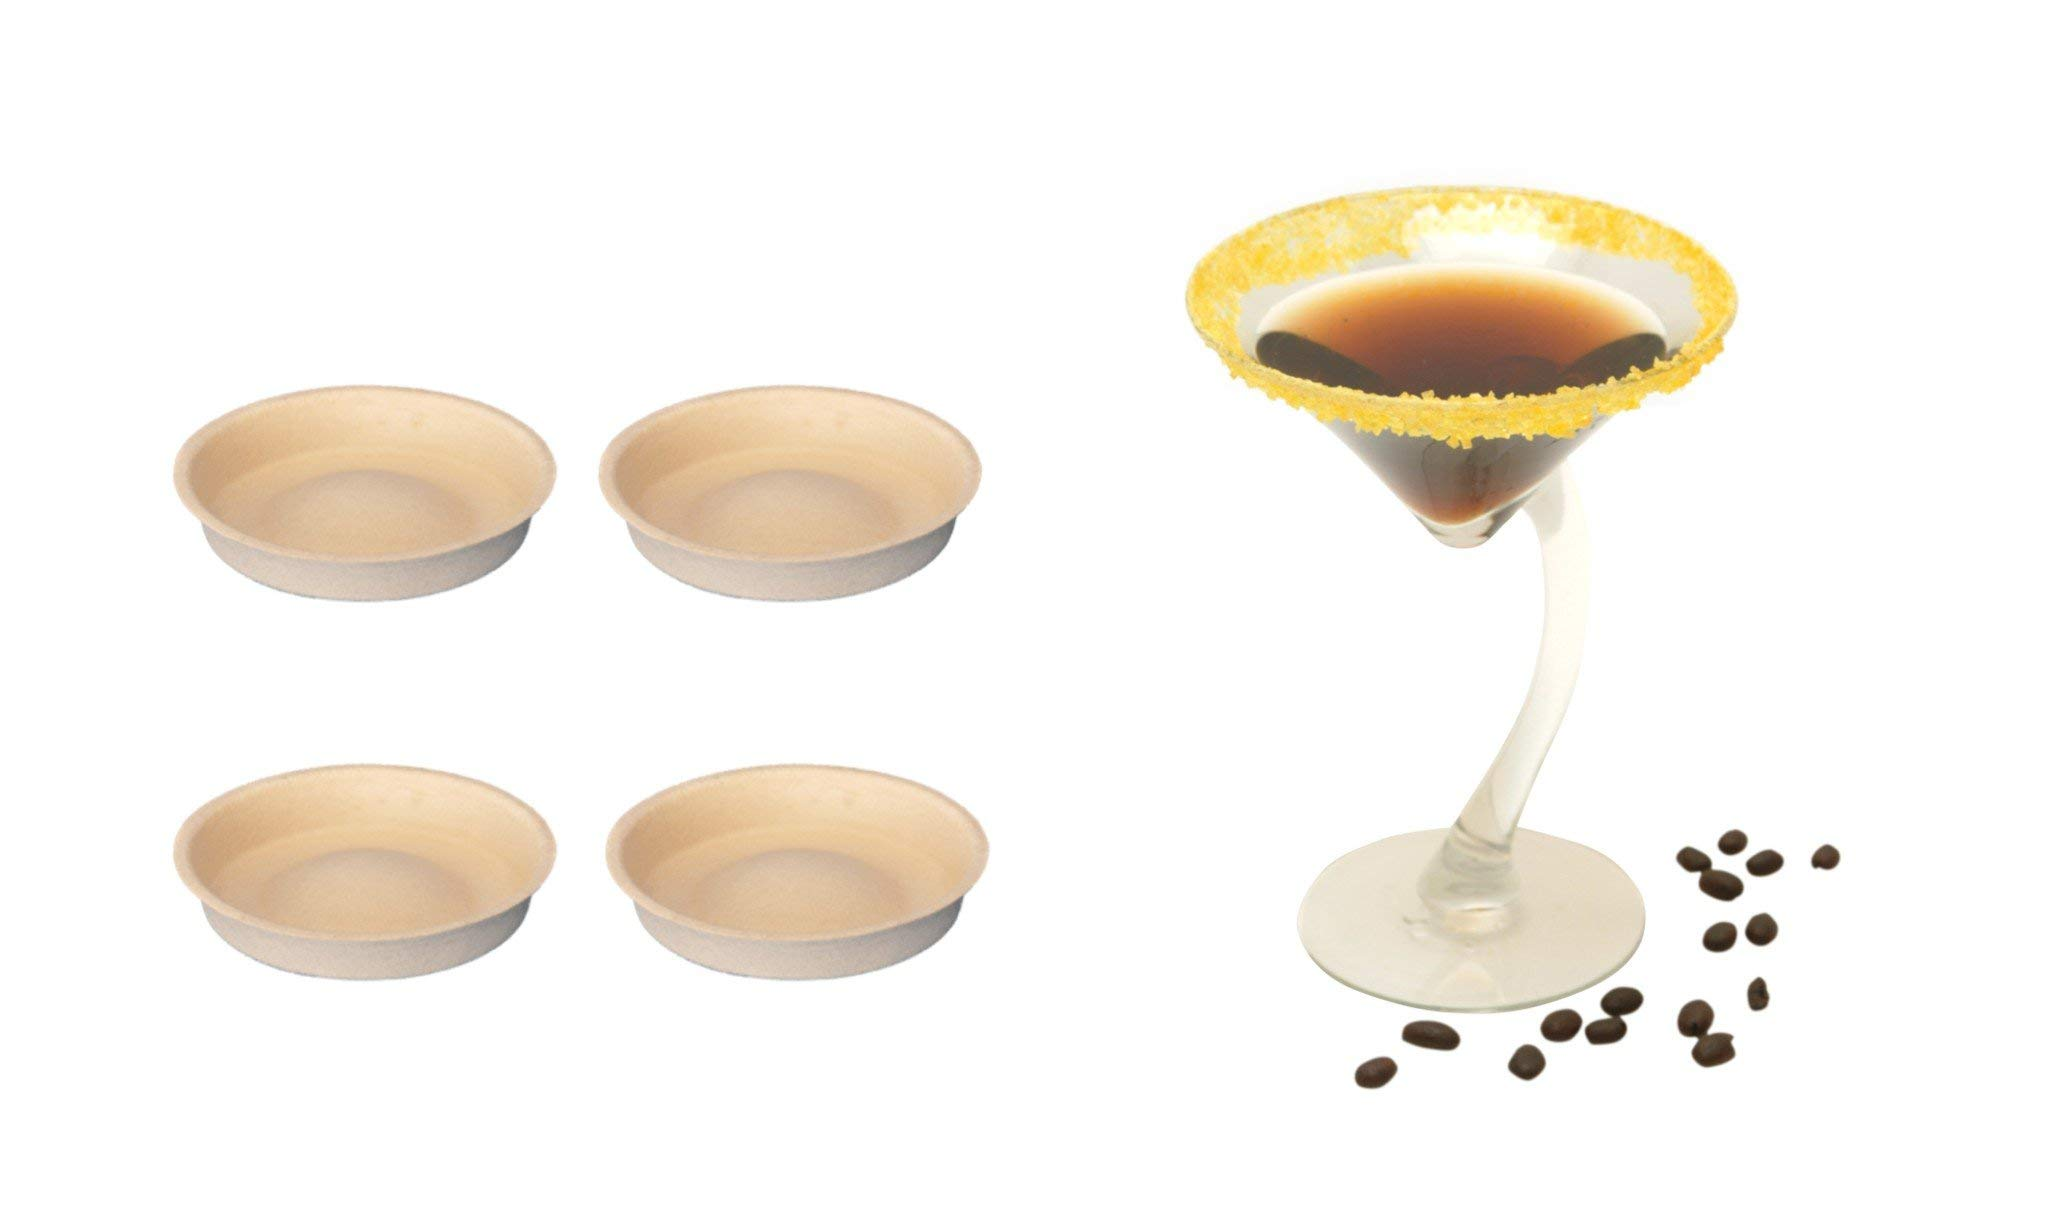 Vanilla Flavored Cocktail Glass Rim Sugar - 4 Pack RoxiSpice Tower Cartridges by RoxiSpice